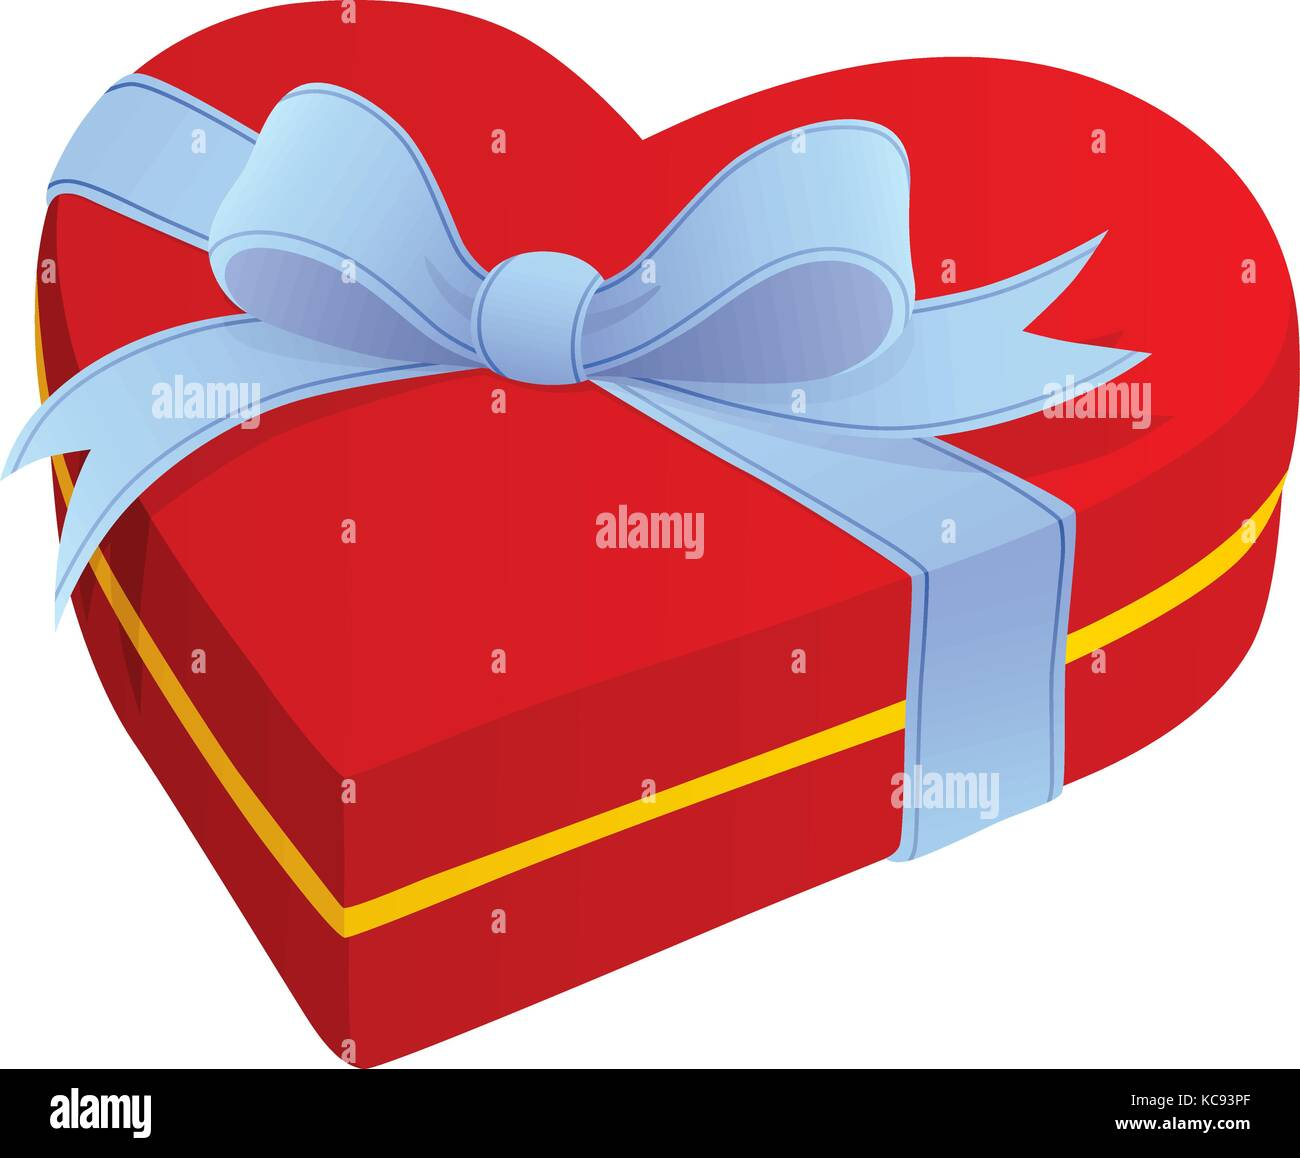 Vector illustration of a red heart shaped gift box with blue bow - Stock Image